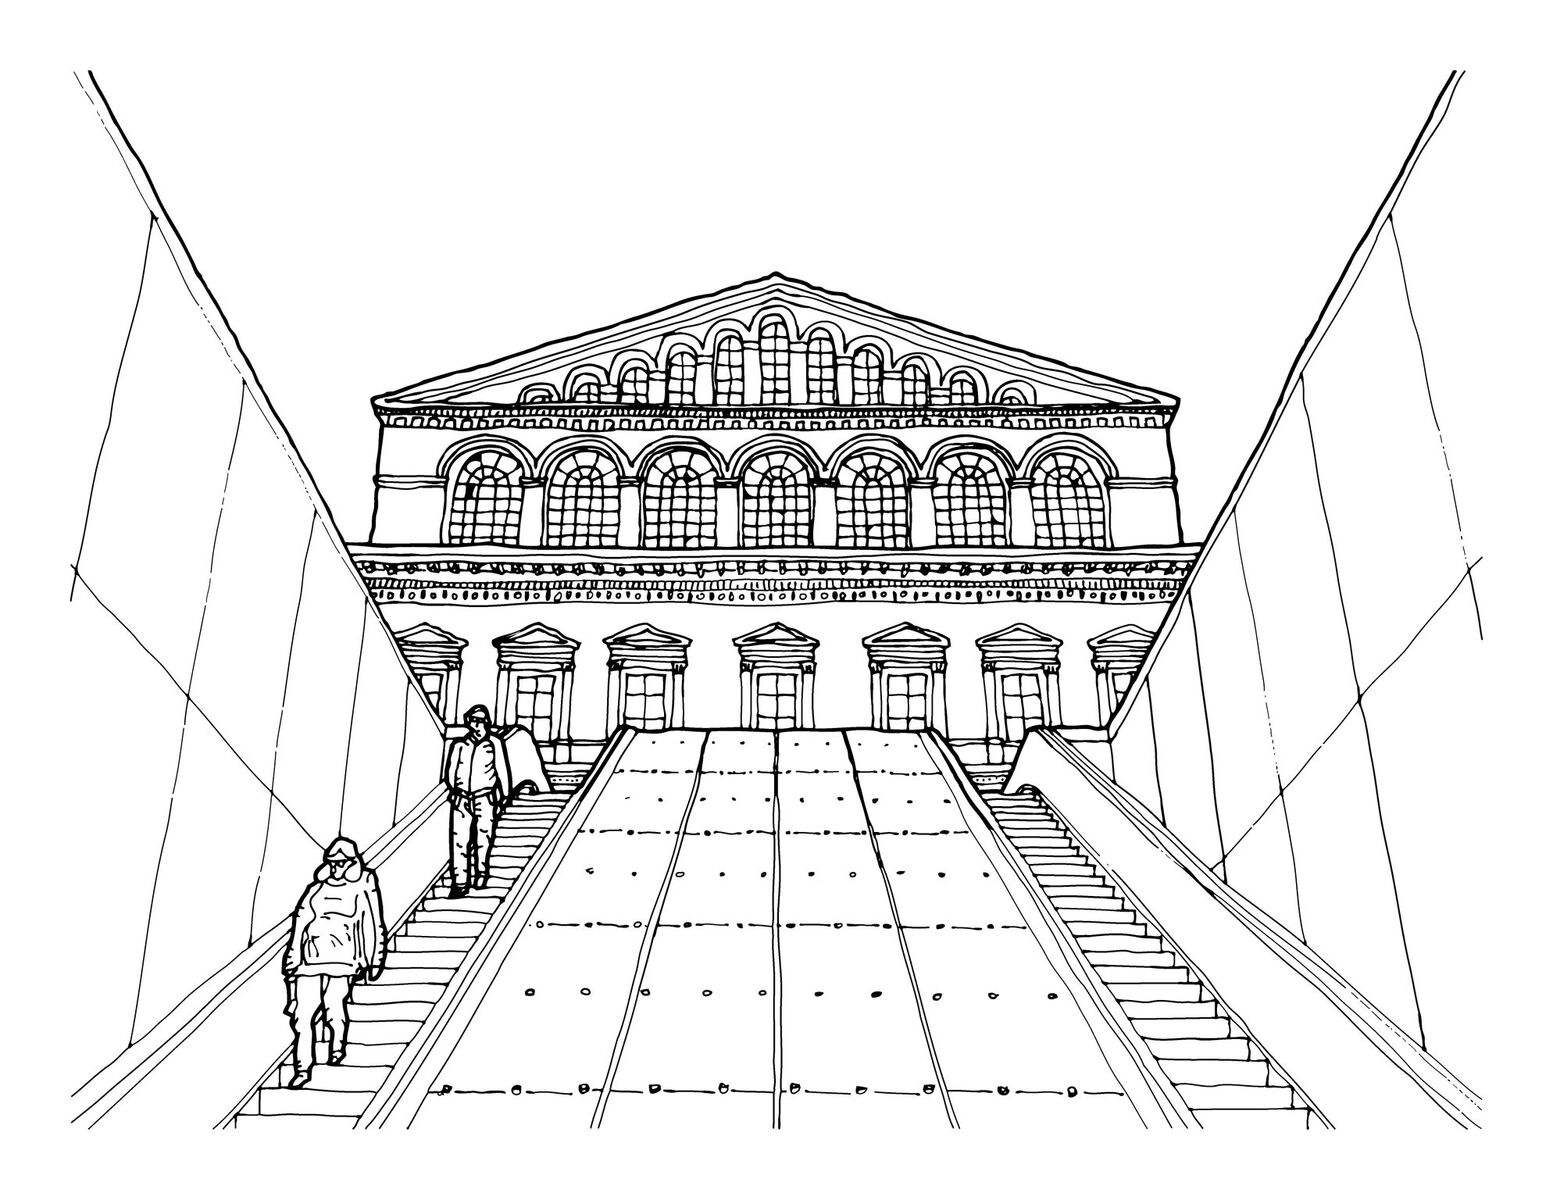 An Architectural Coloring Book for Washington, D.C